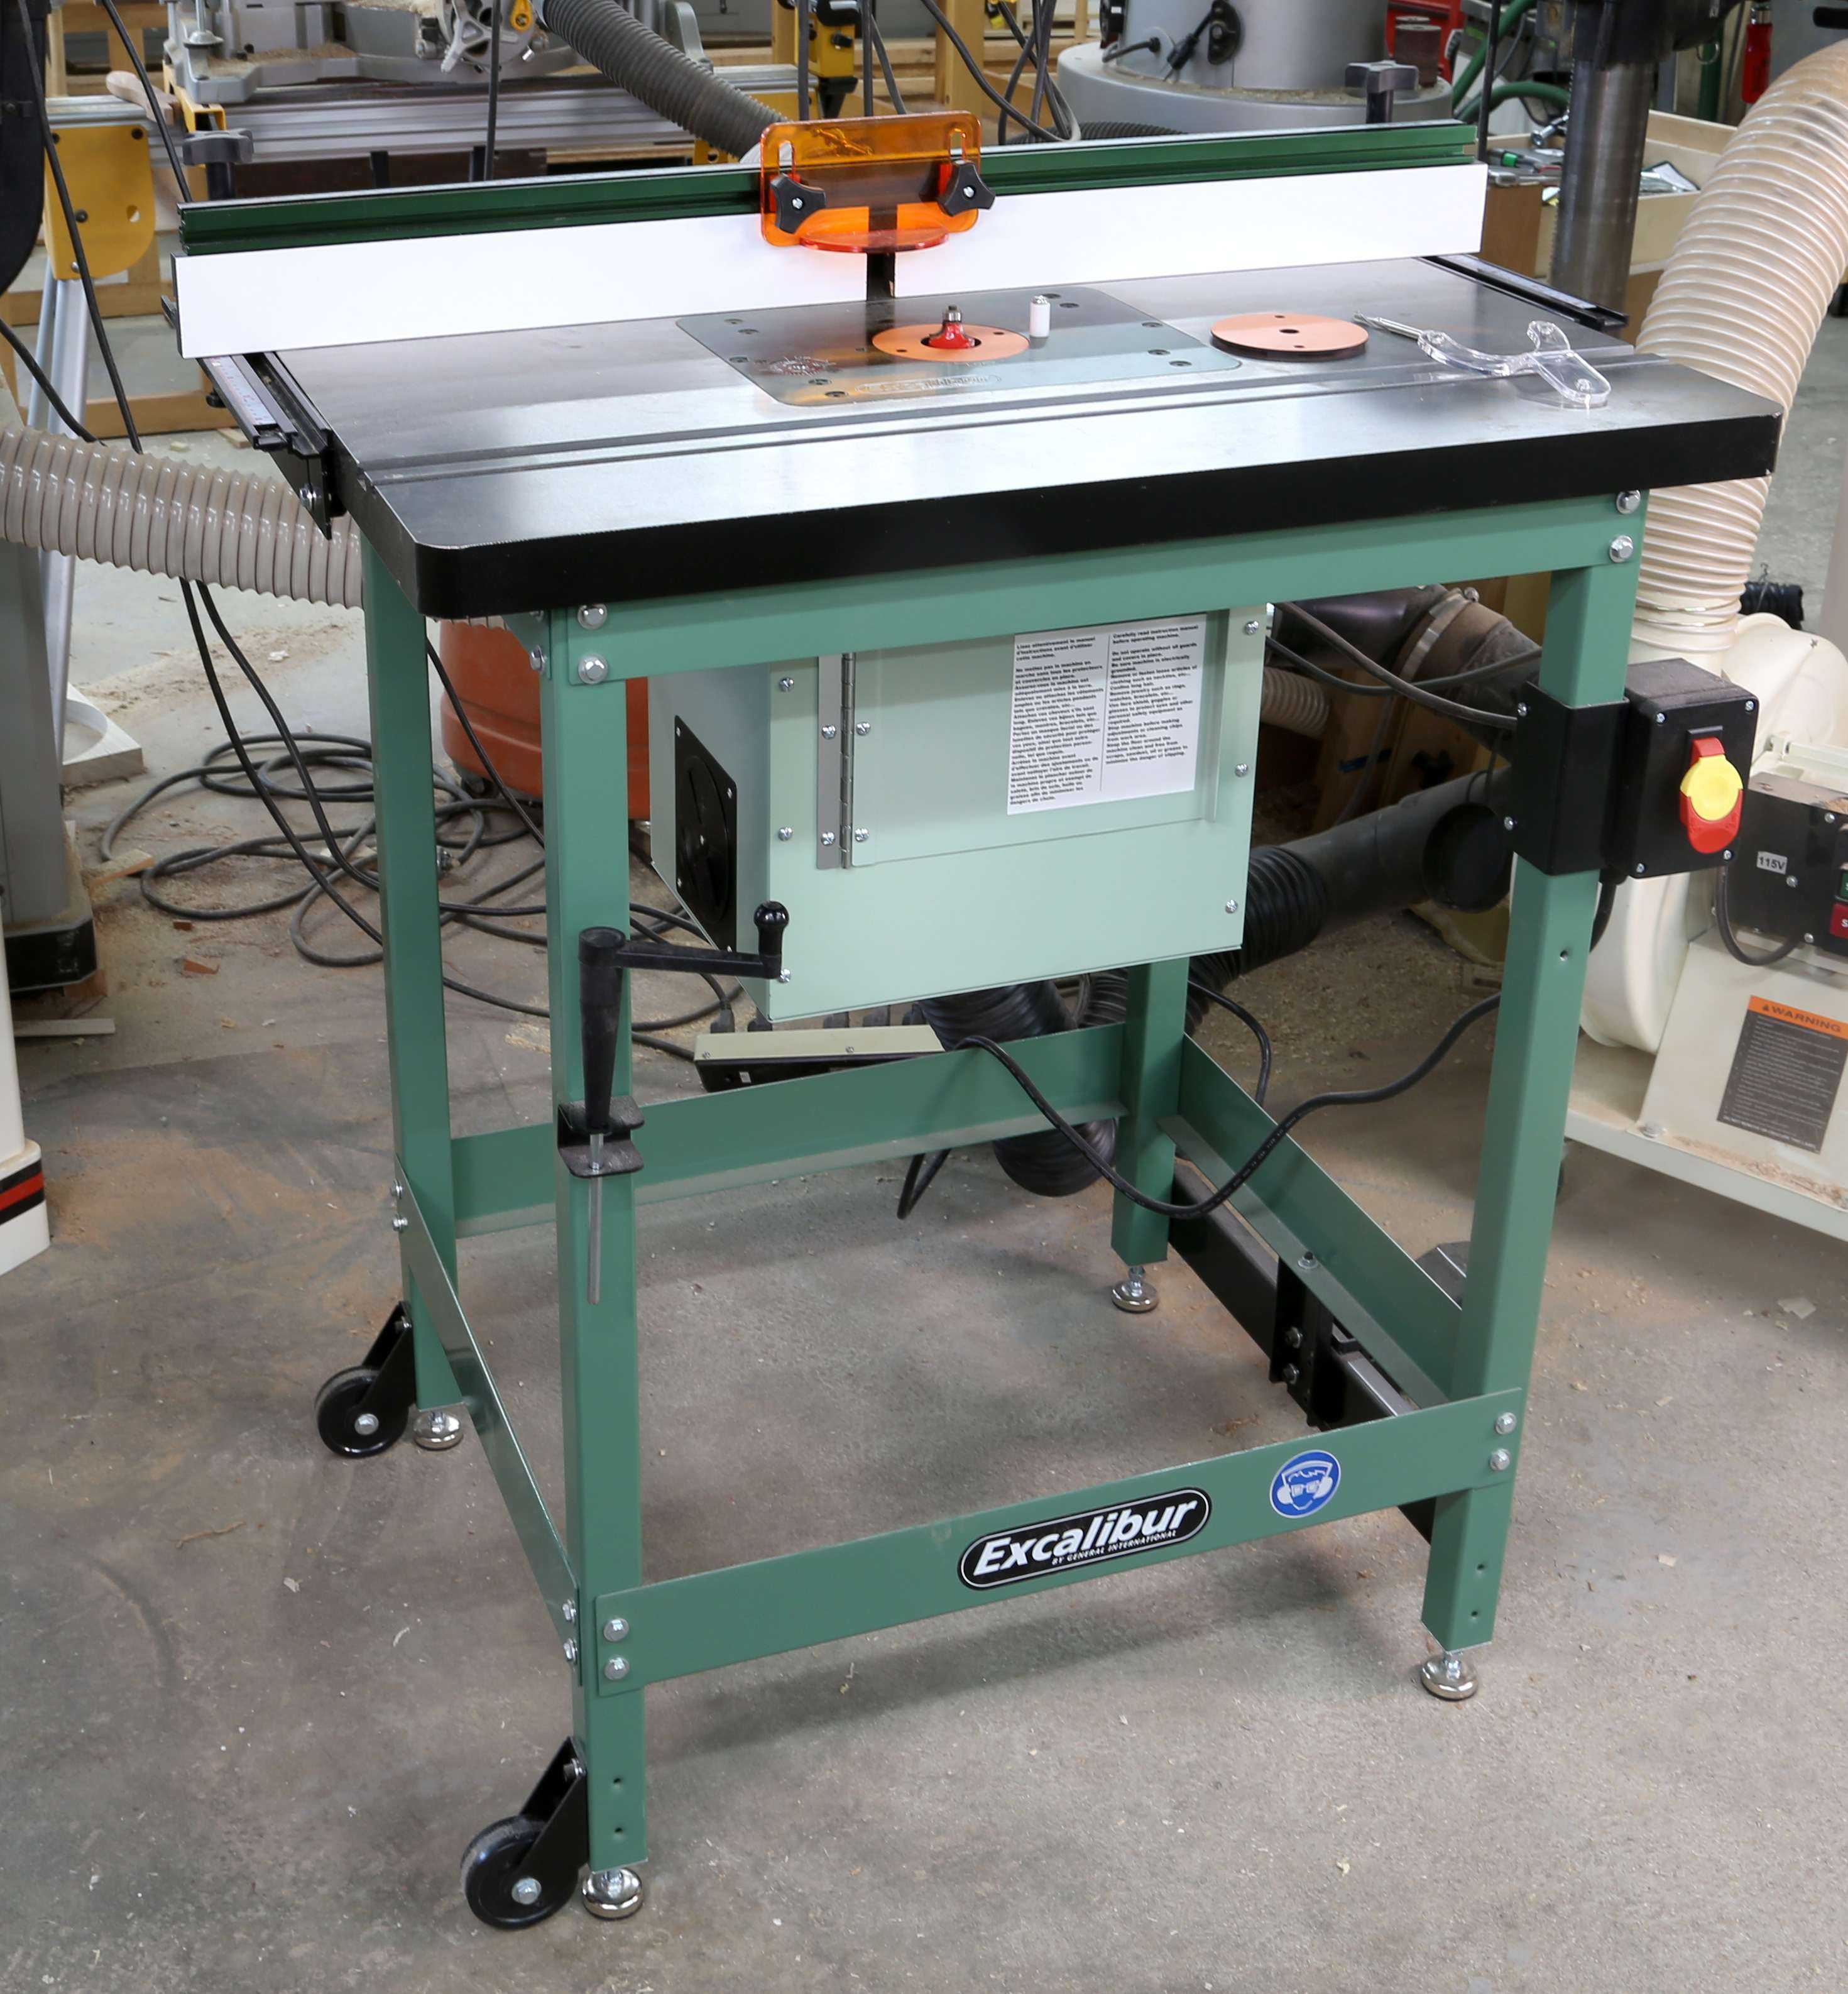 Take a Look at the Excalibur Deluxe Router Table Kit ...   2941 x 3173 jpeg 1559kB